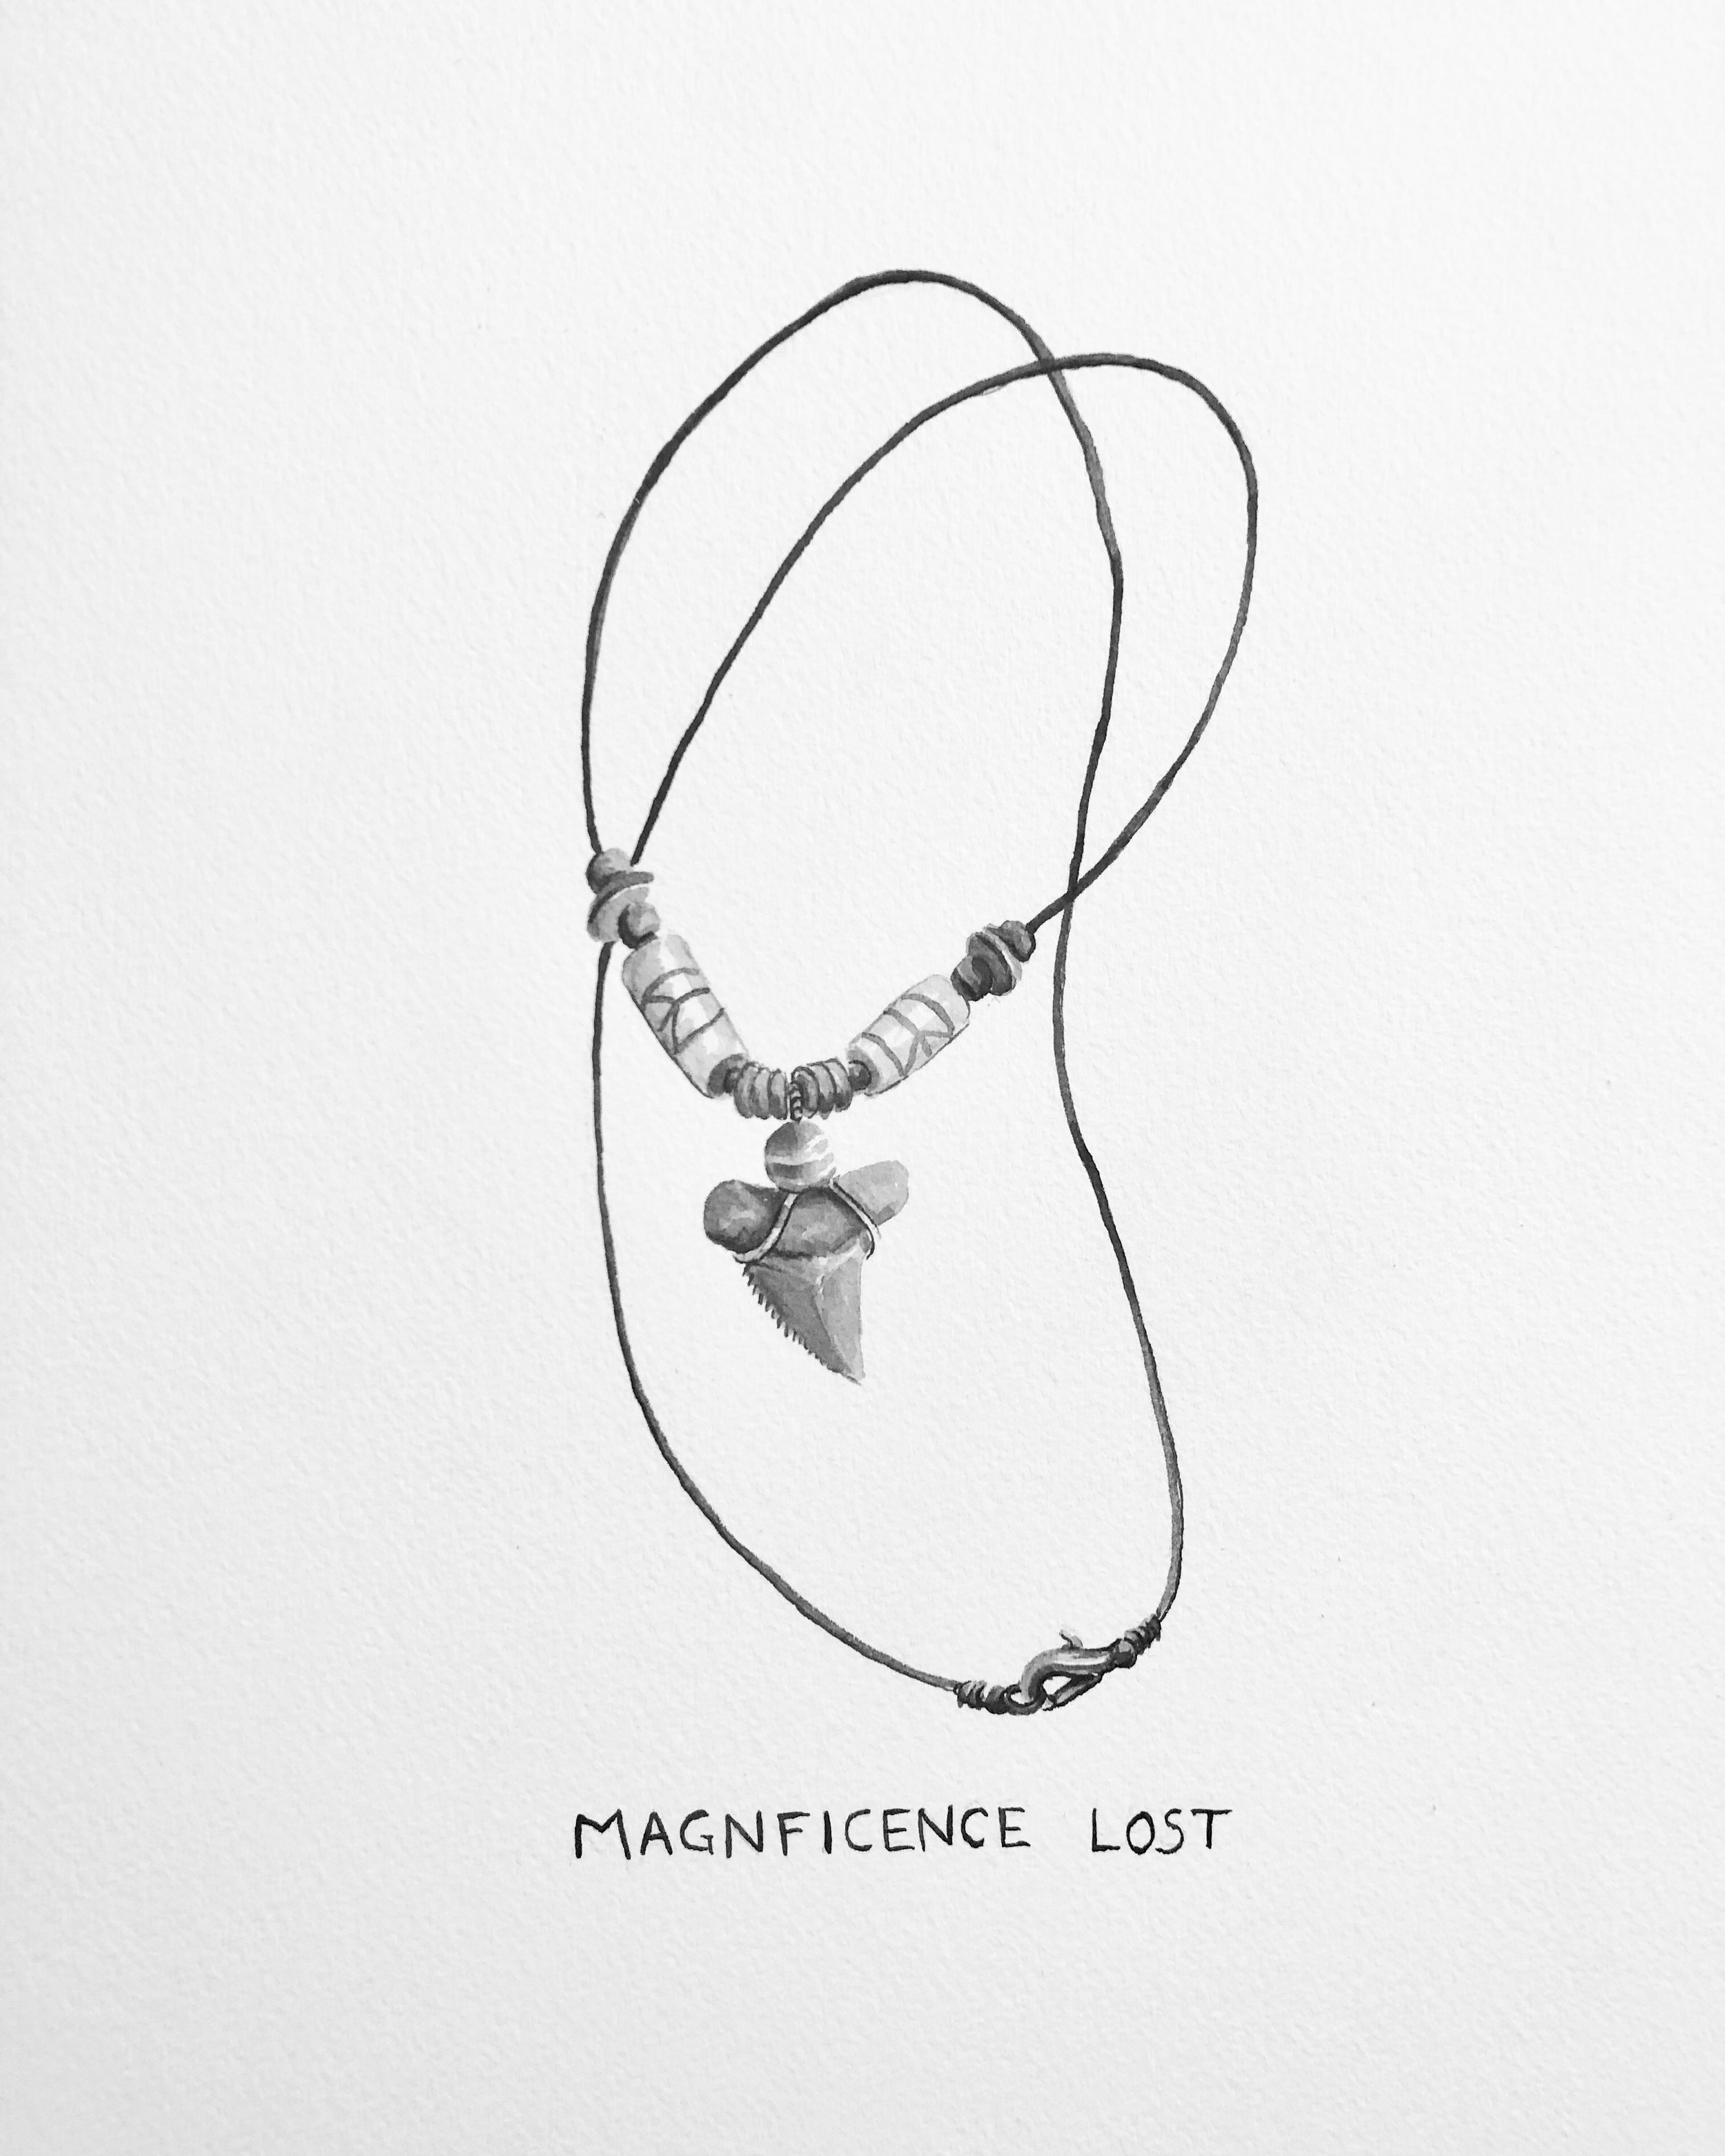 Magnificence Lost